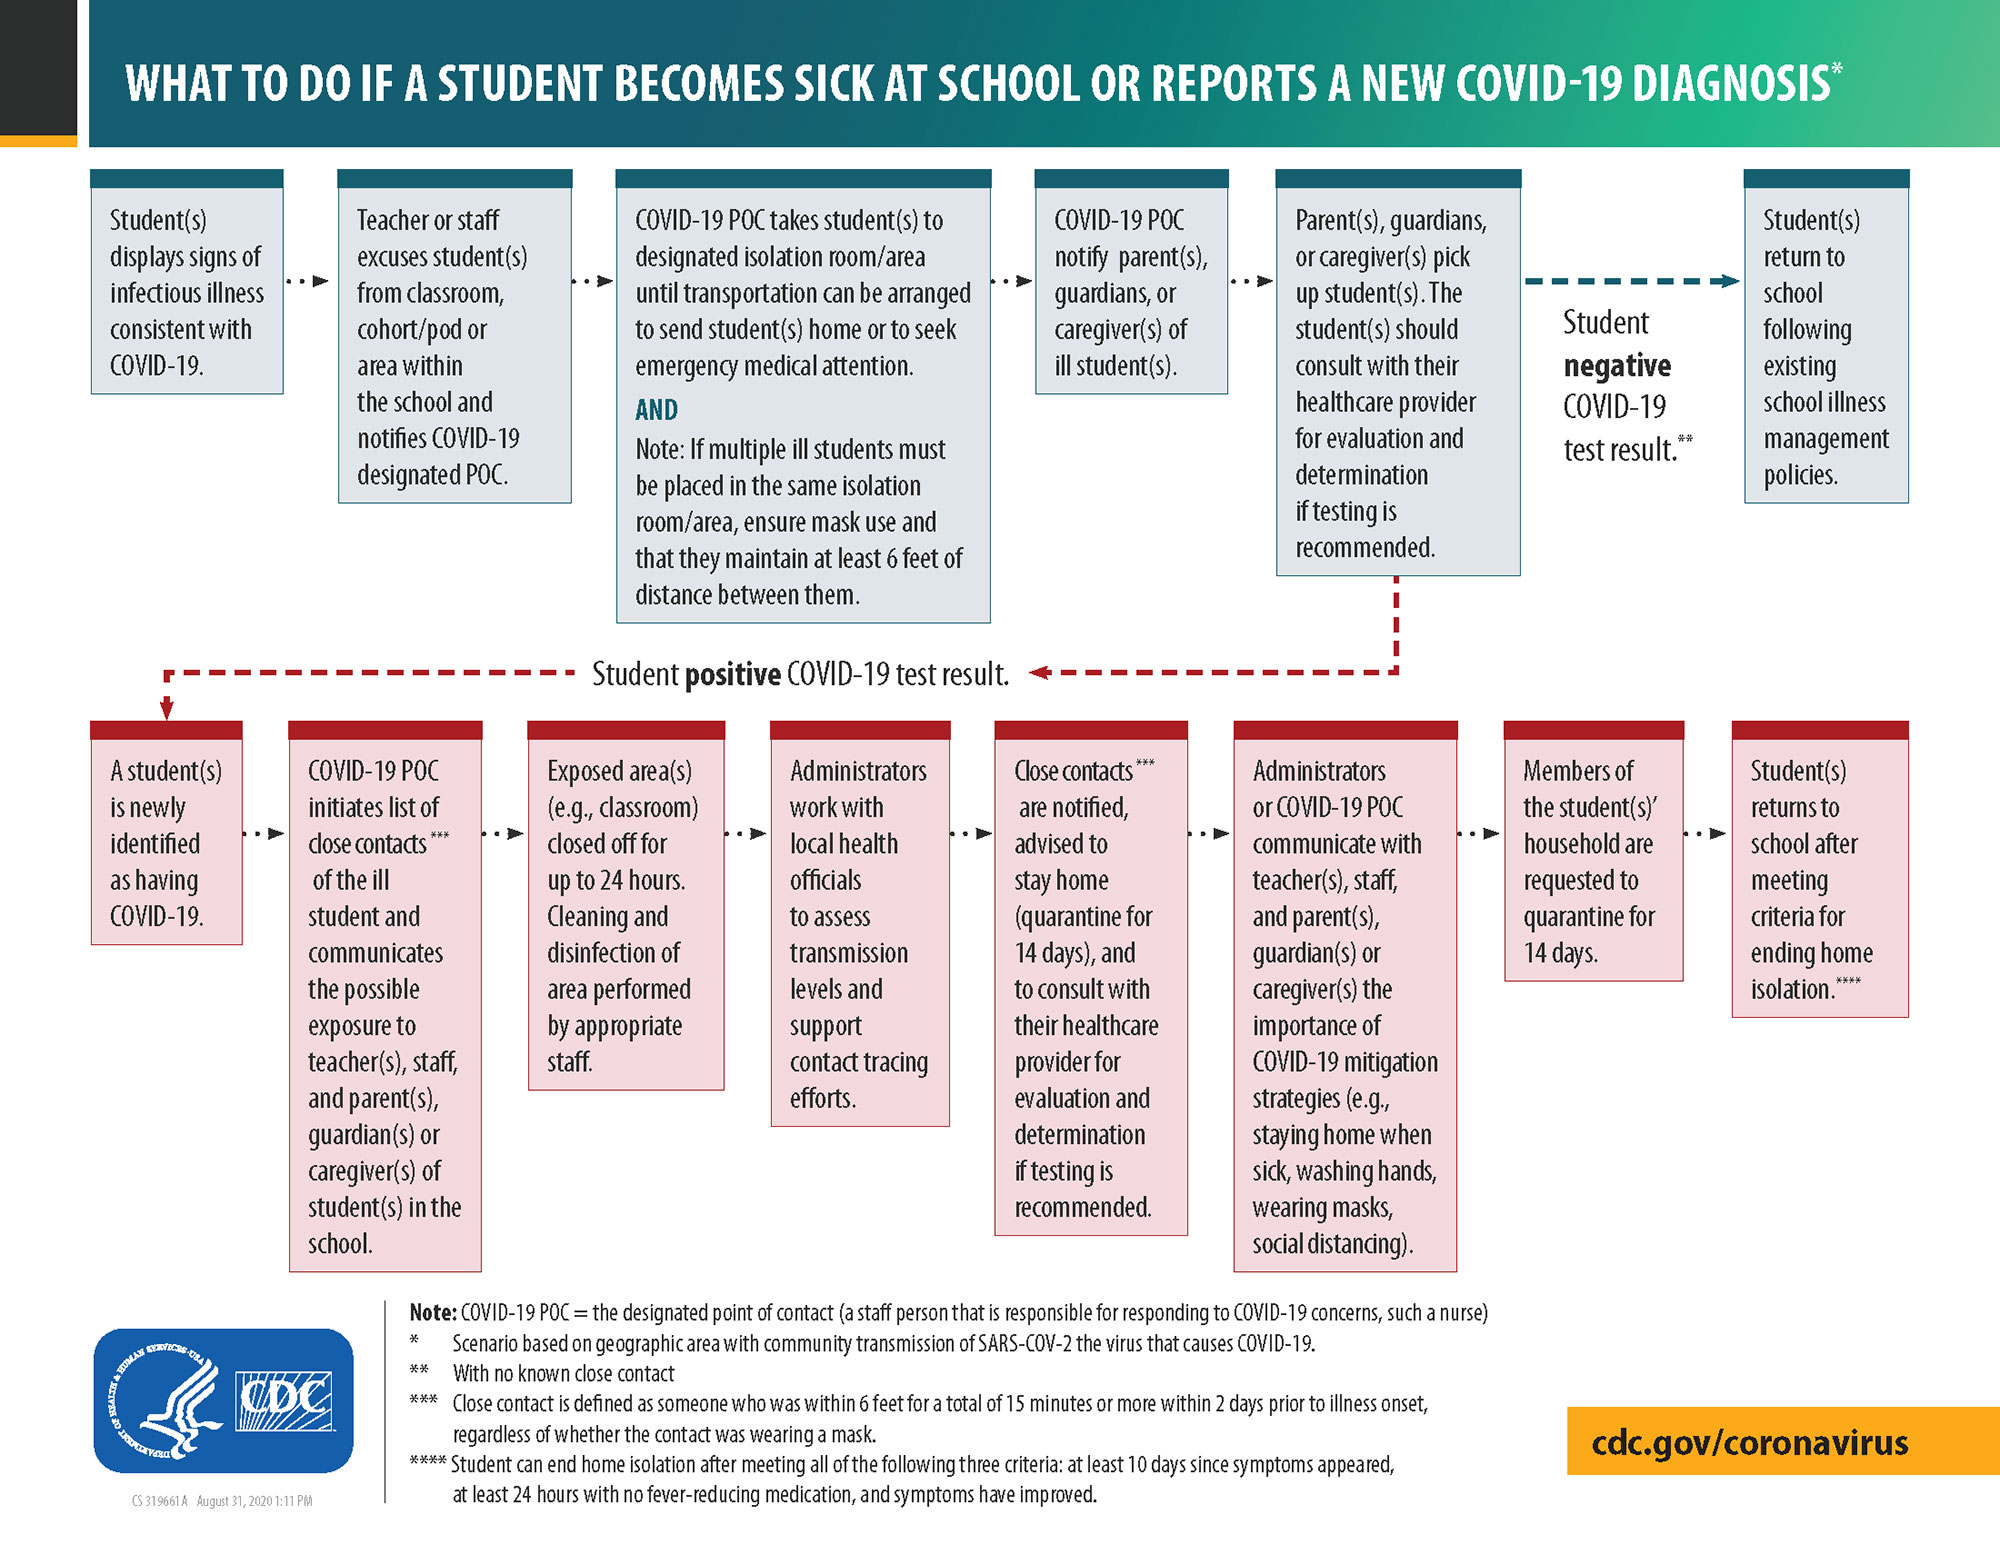 What to do if a student becomes sick flowchart